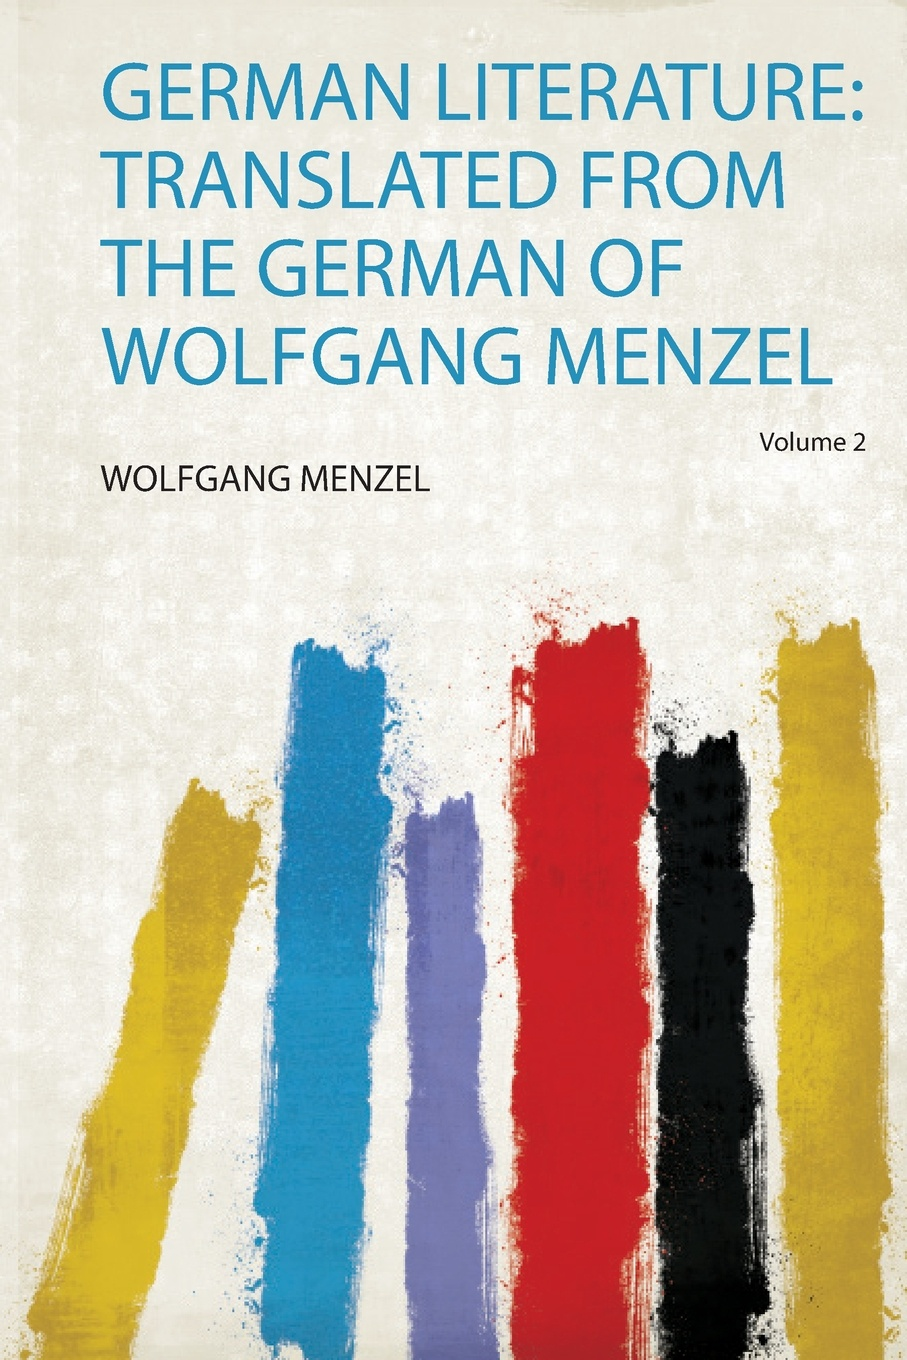 German Literature. Translated from the German of Wolfgang Menzel menzel wolfgang german literature translated from the german of wolfgang menzel